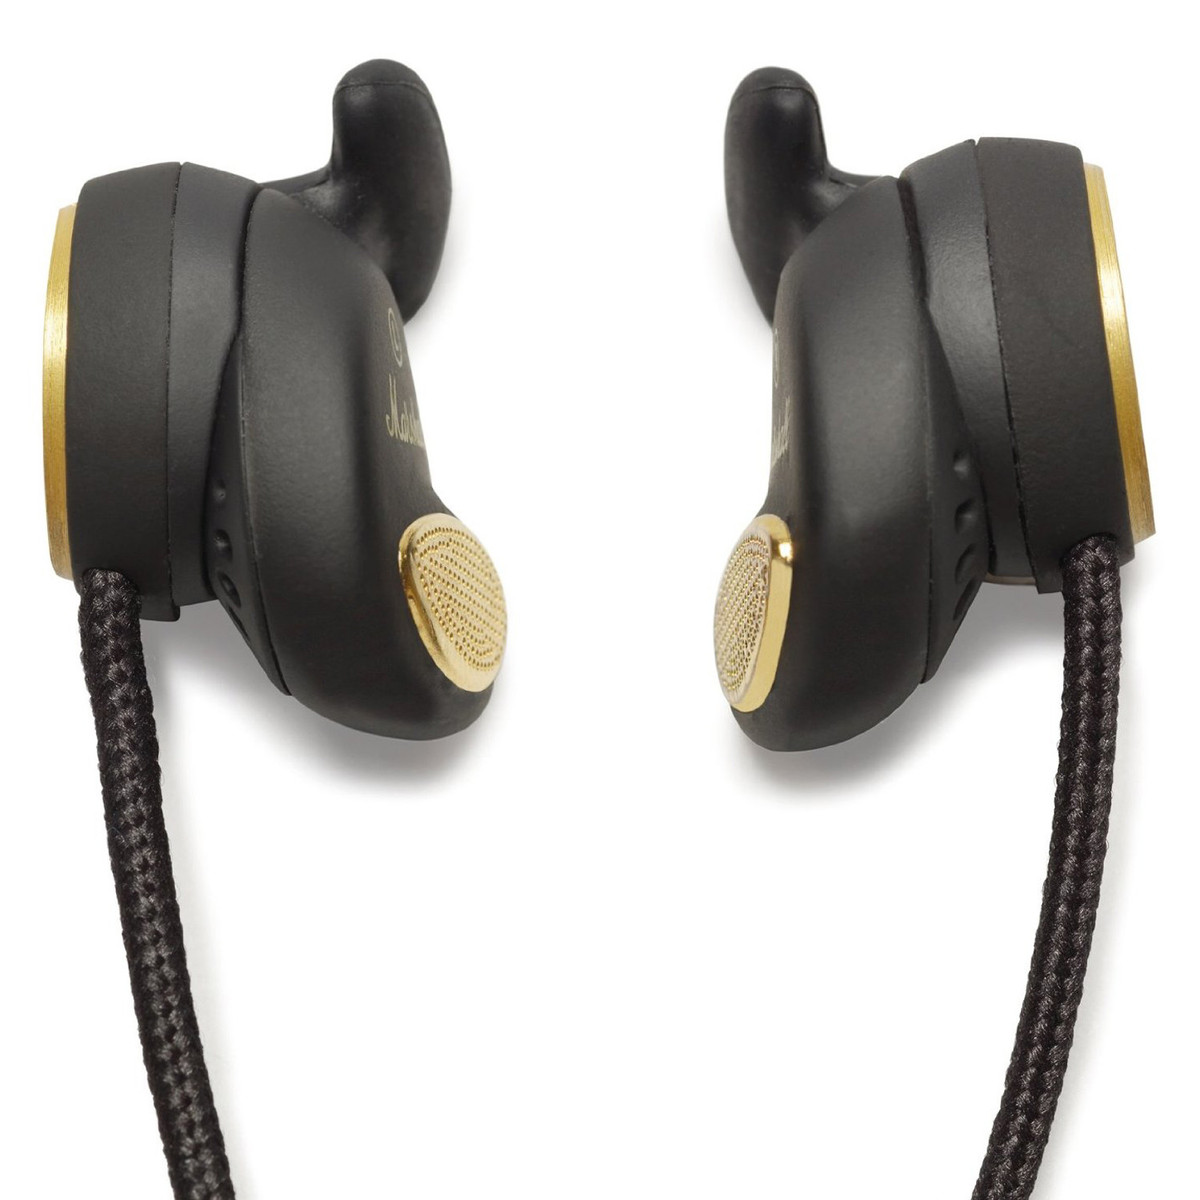 casque de mineur disque marshall noir. Black Bedroom Furniture Sets. Home Design Ideas